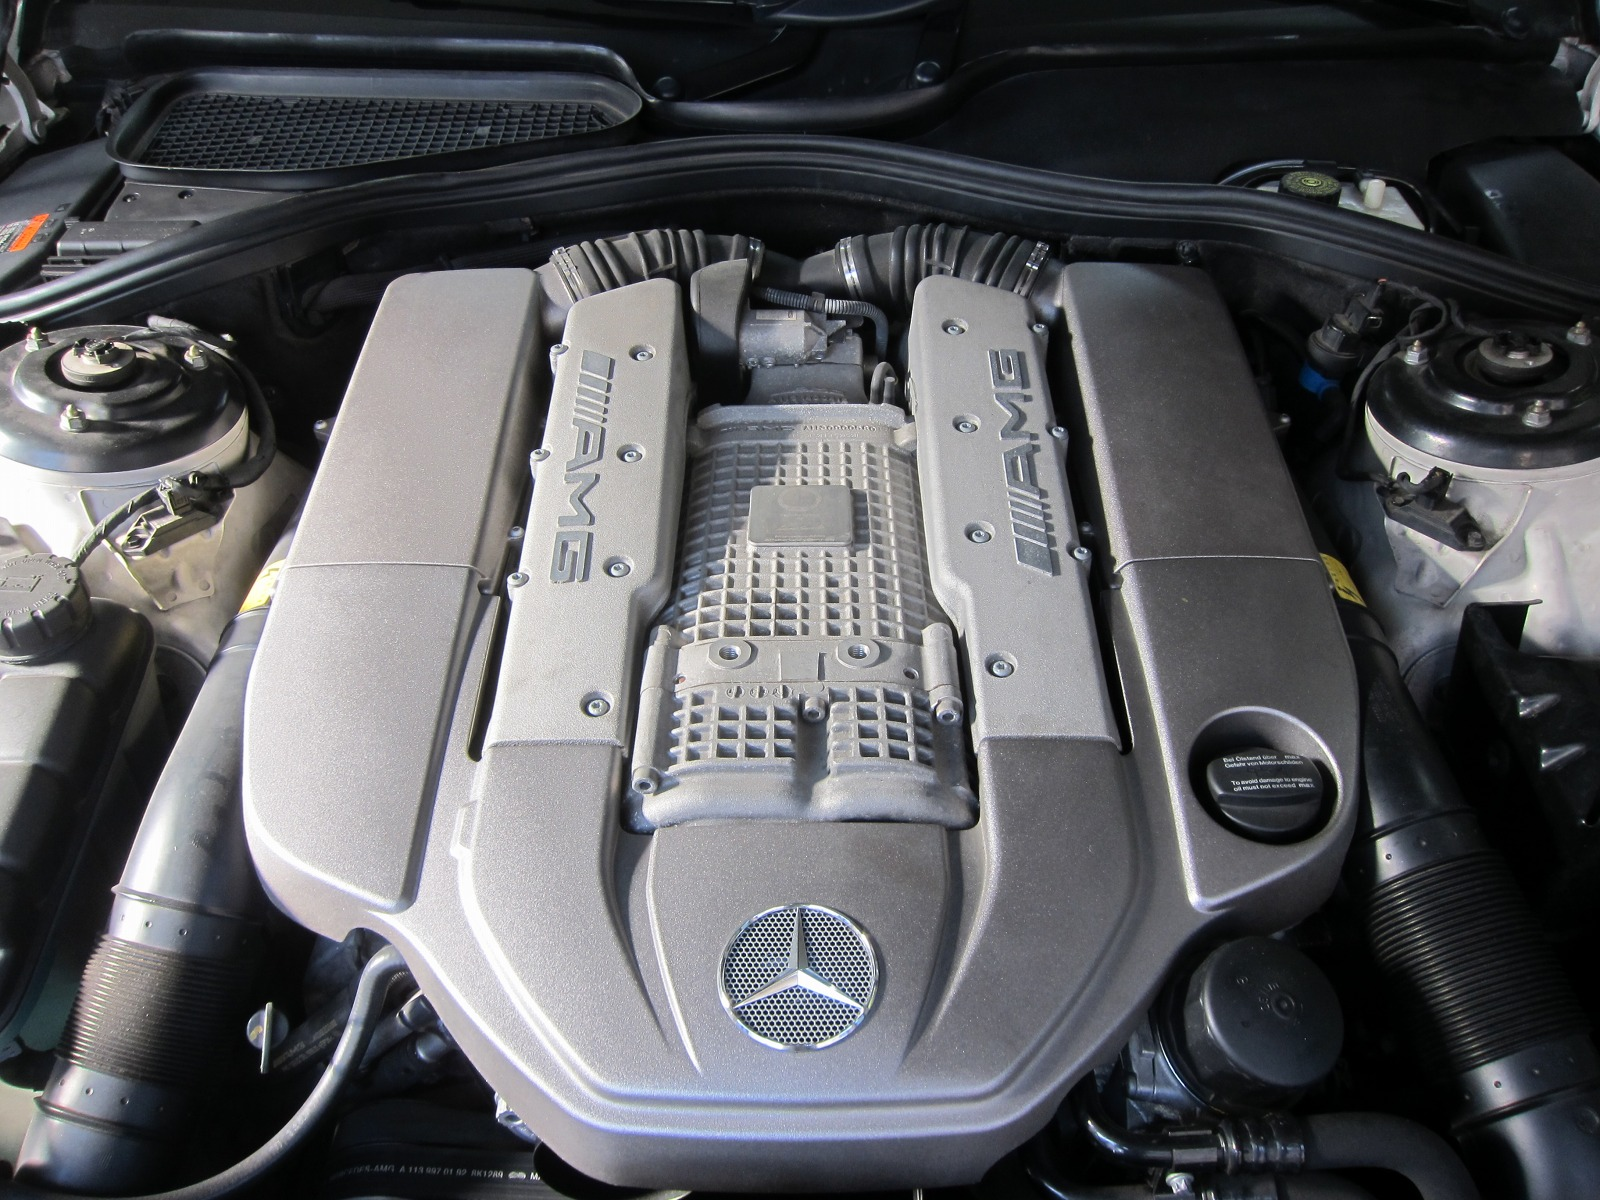 20131229-mercedes-benz-cl55-amg-05